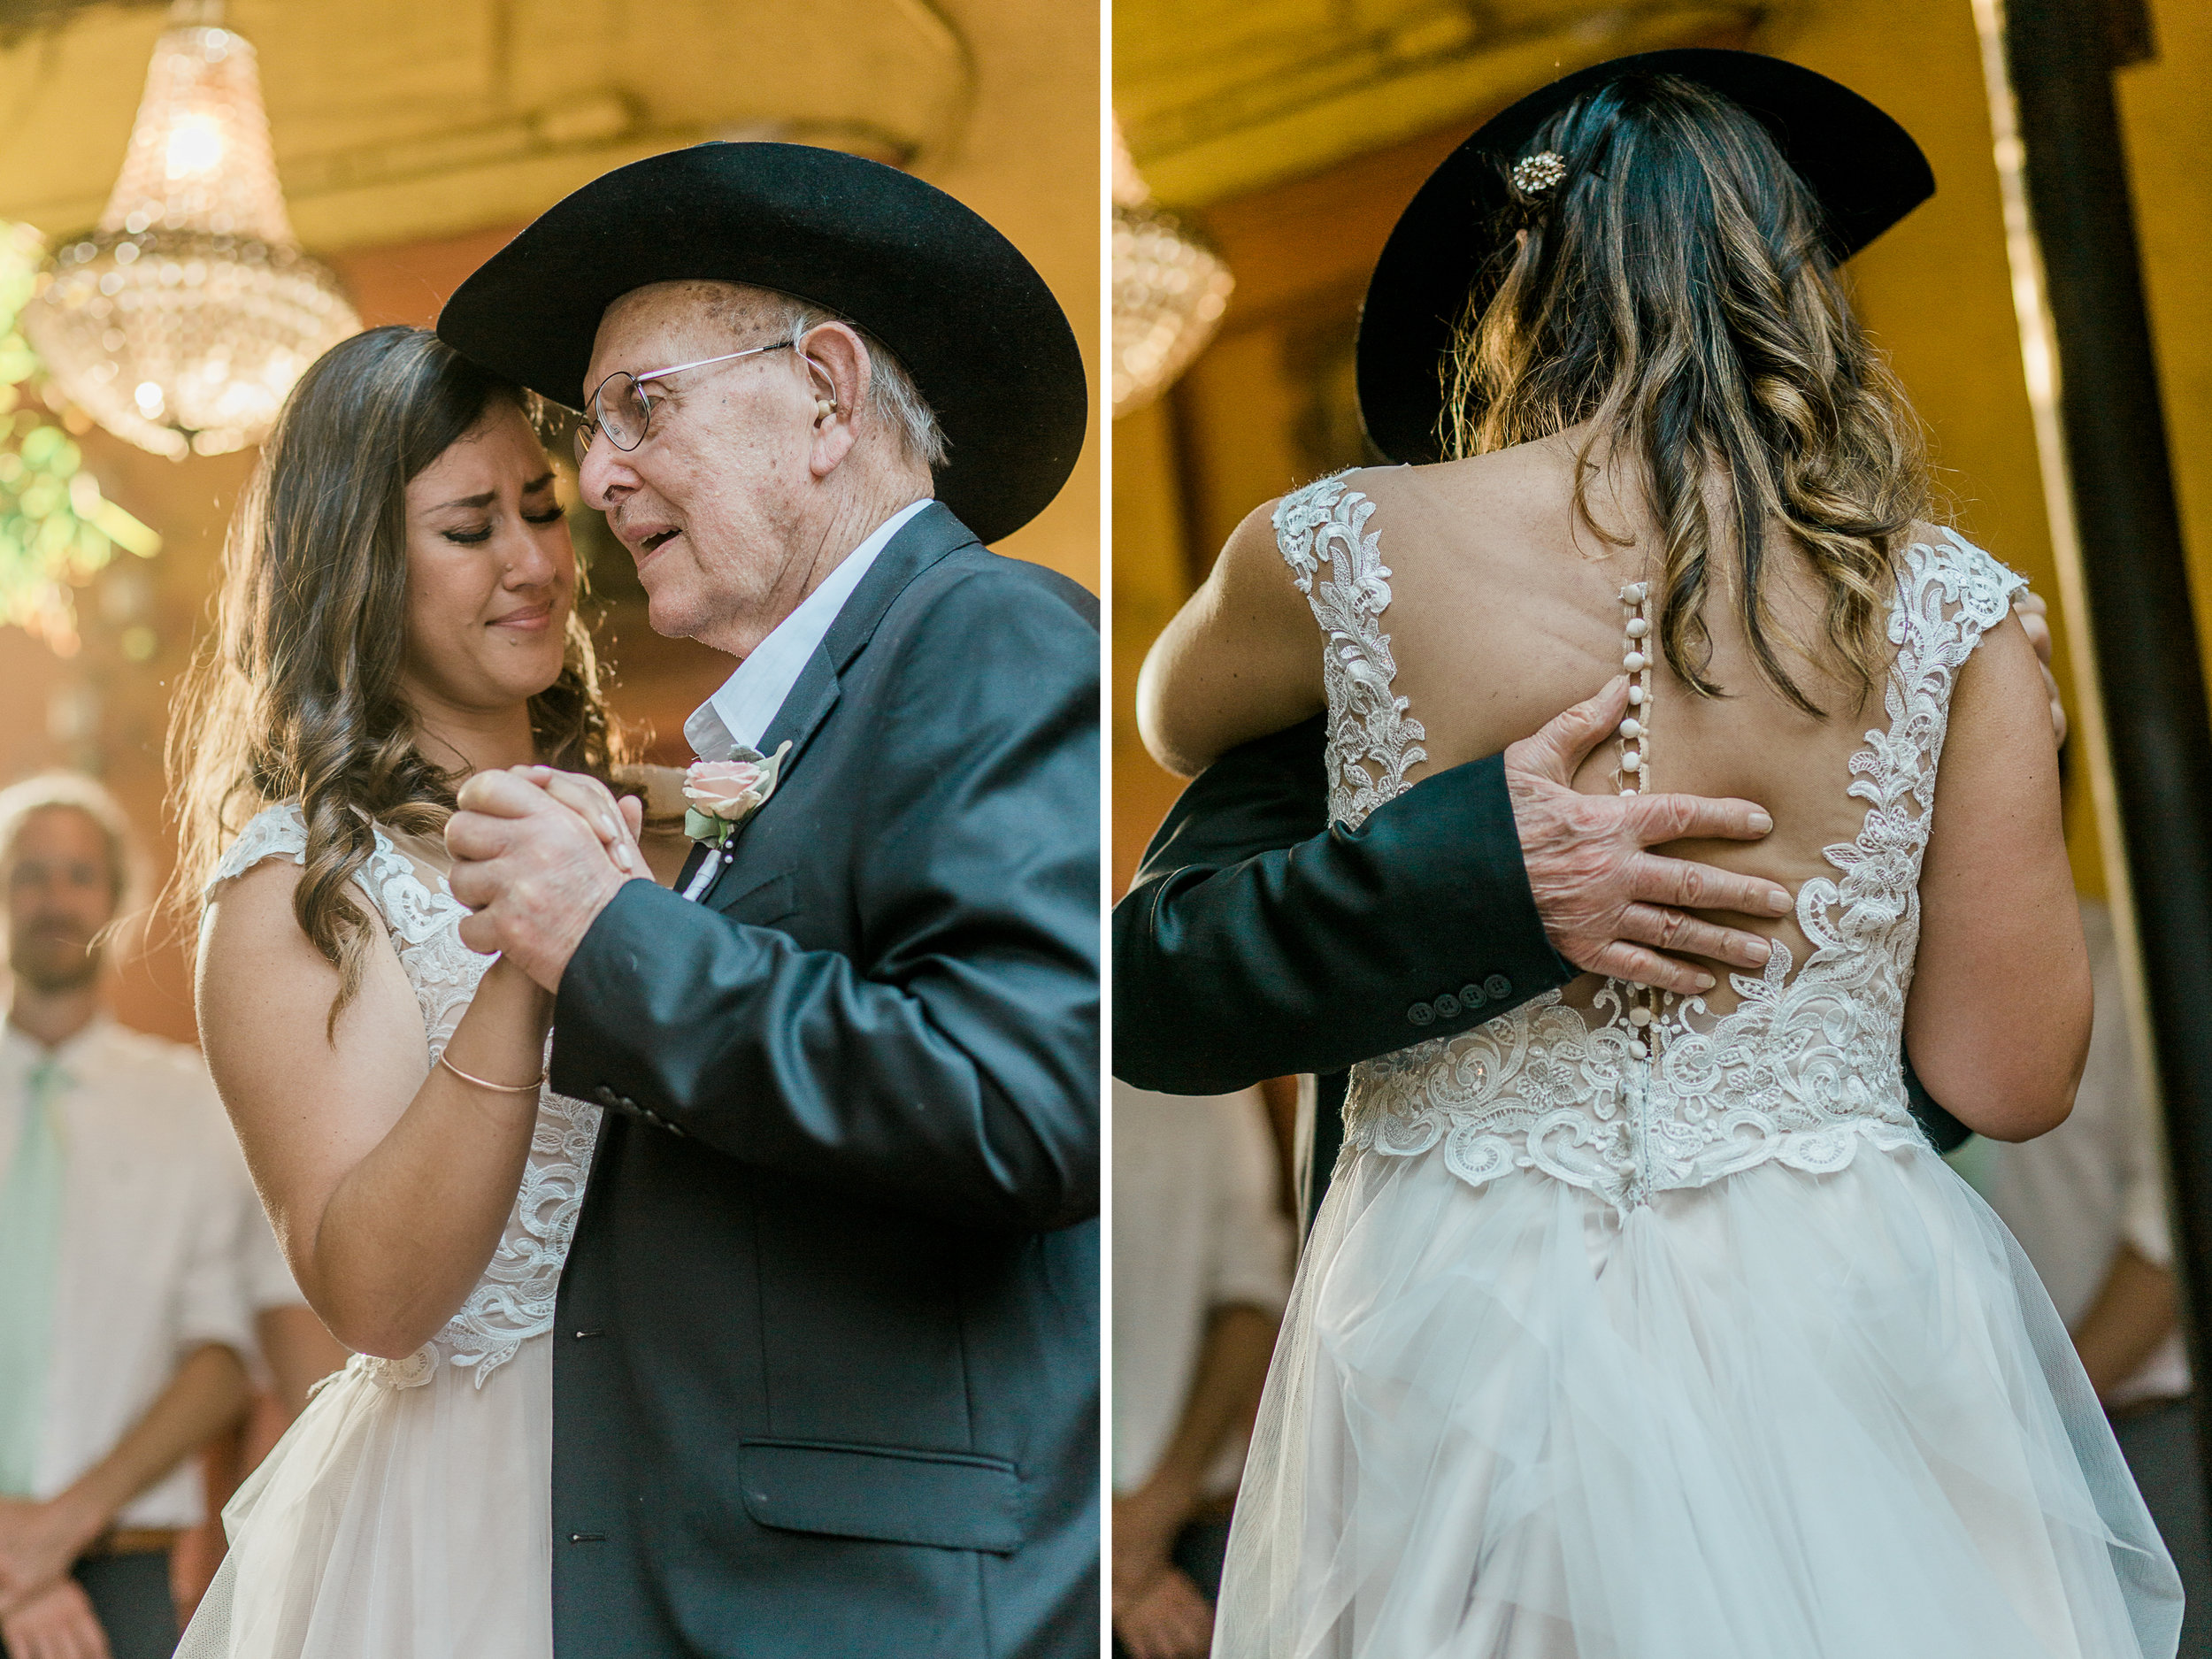 SmithWedding_HoustonTexasWeddingPhotographer_LightandAiry_FilmPhotographer_AvantGarden_HoustonHeightsWedding26.jpg